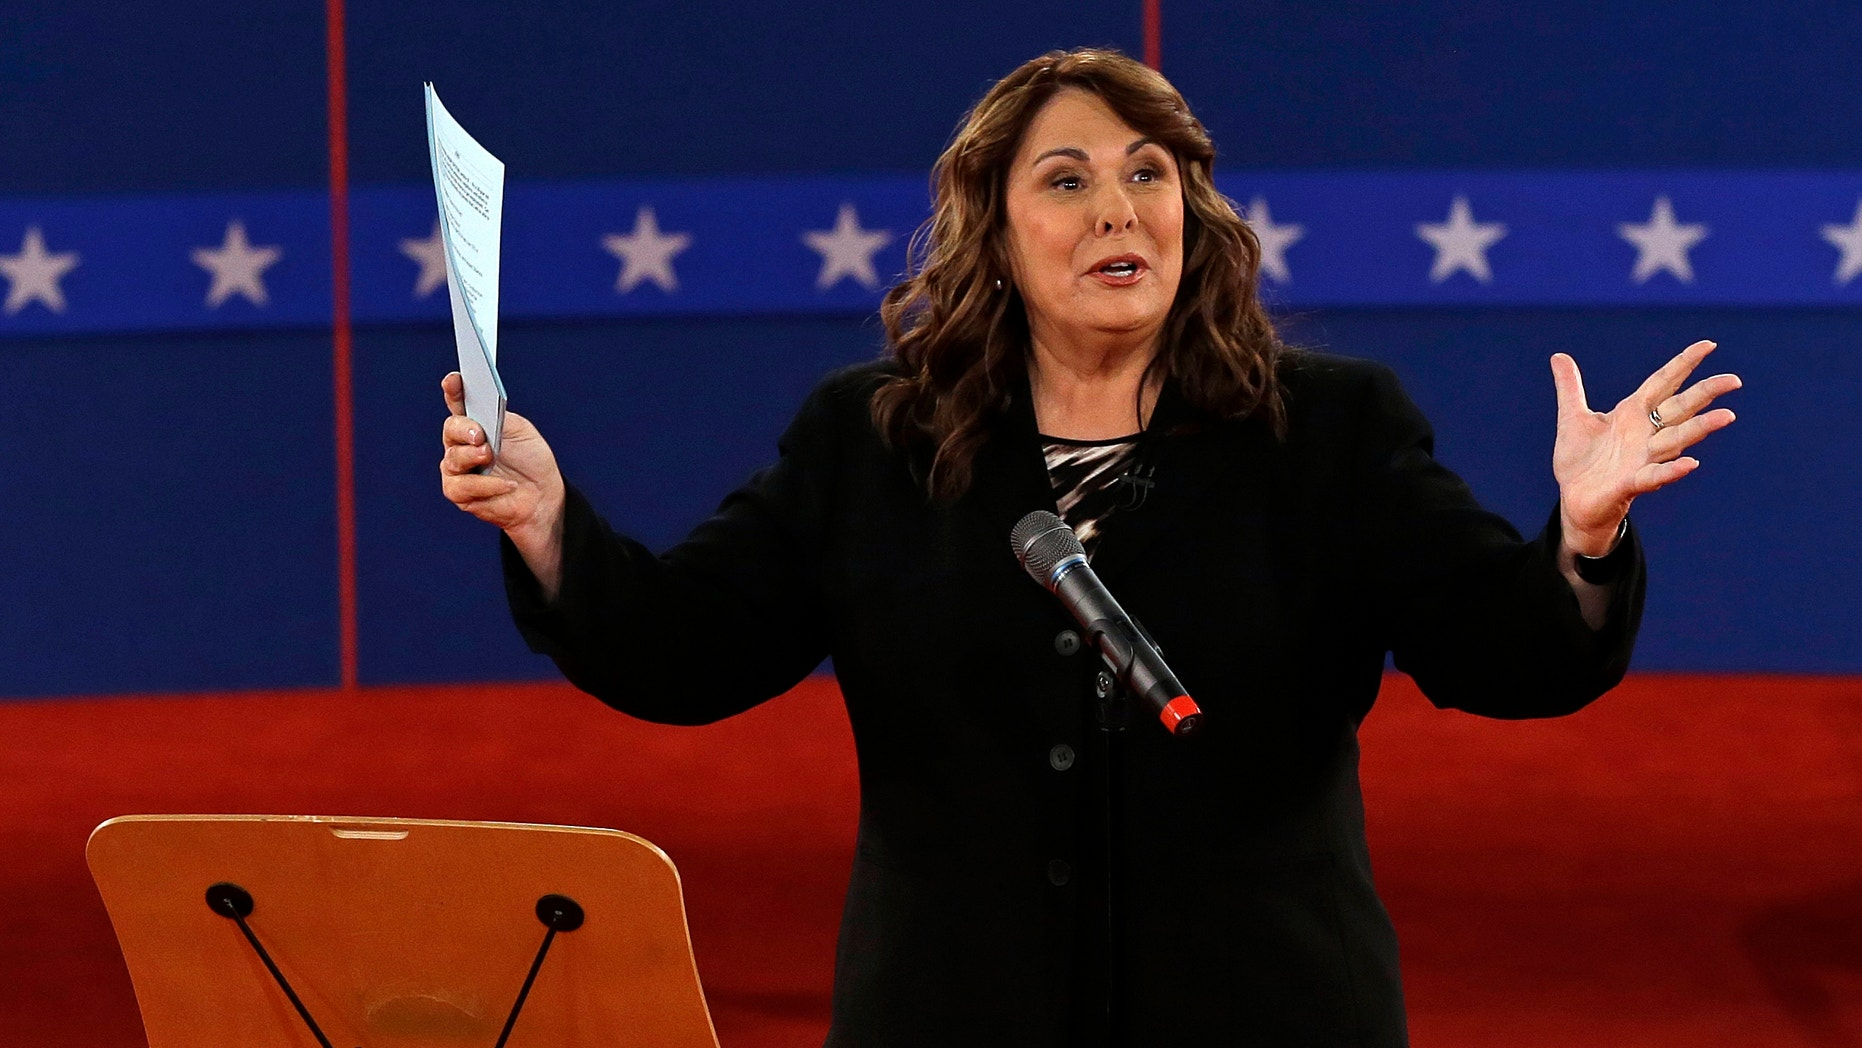 Oct. 16, 2012: Moderator Candy Crowley talks to the audience before the second presidential debate at Hofstra University.